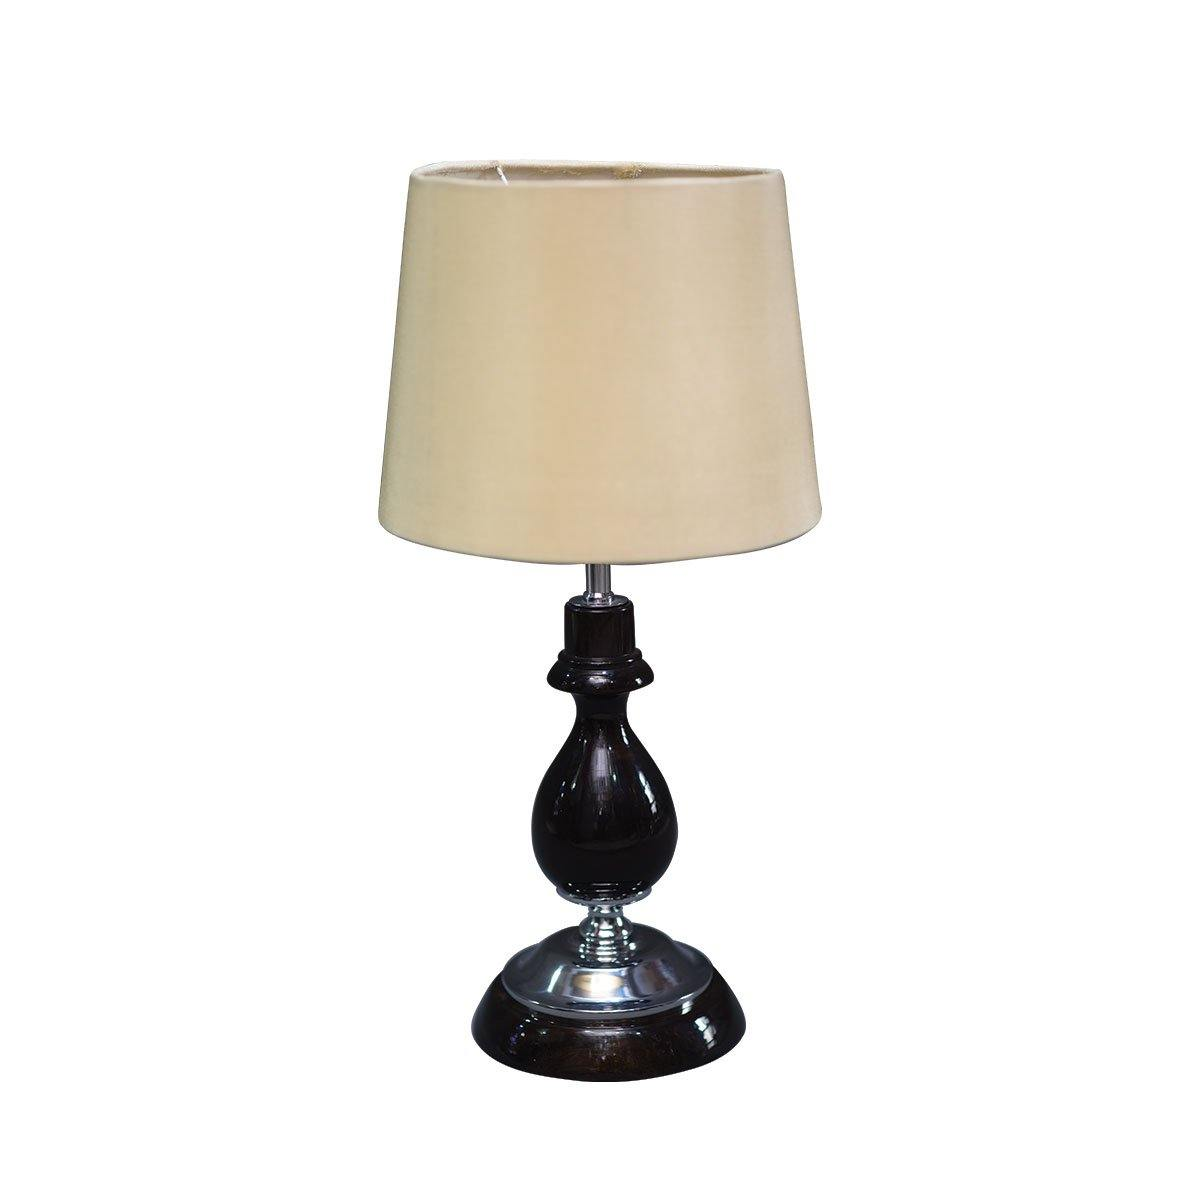 Back table lamp